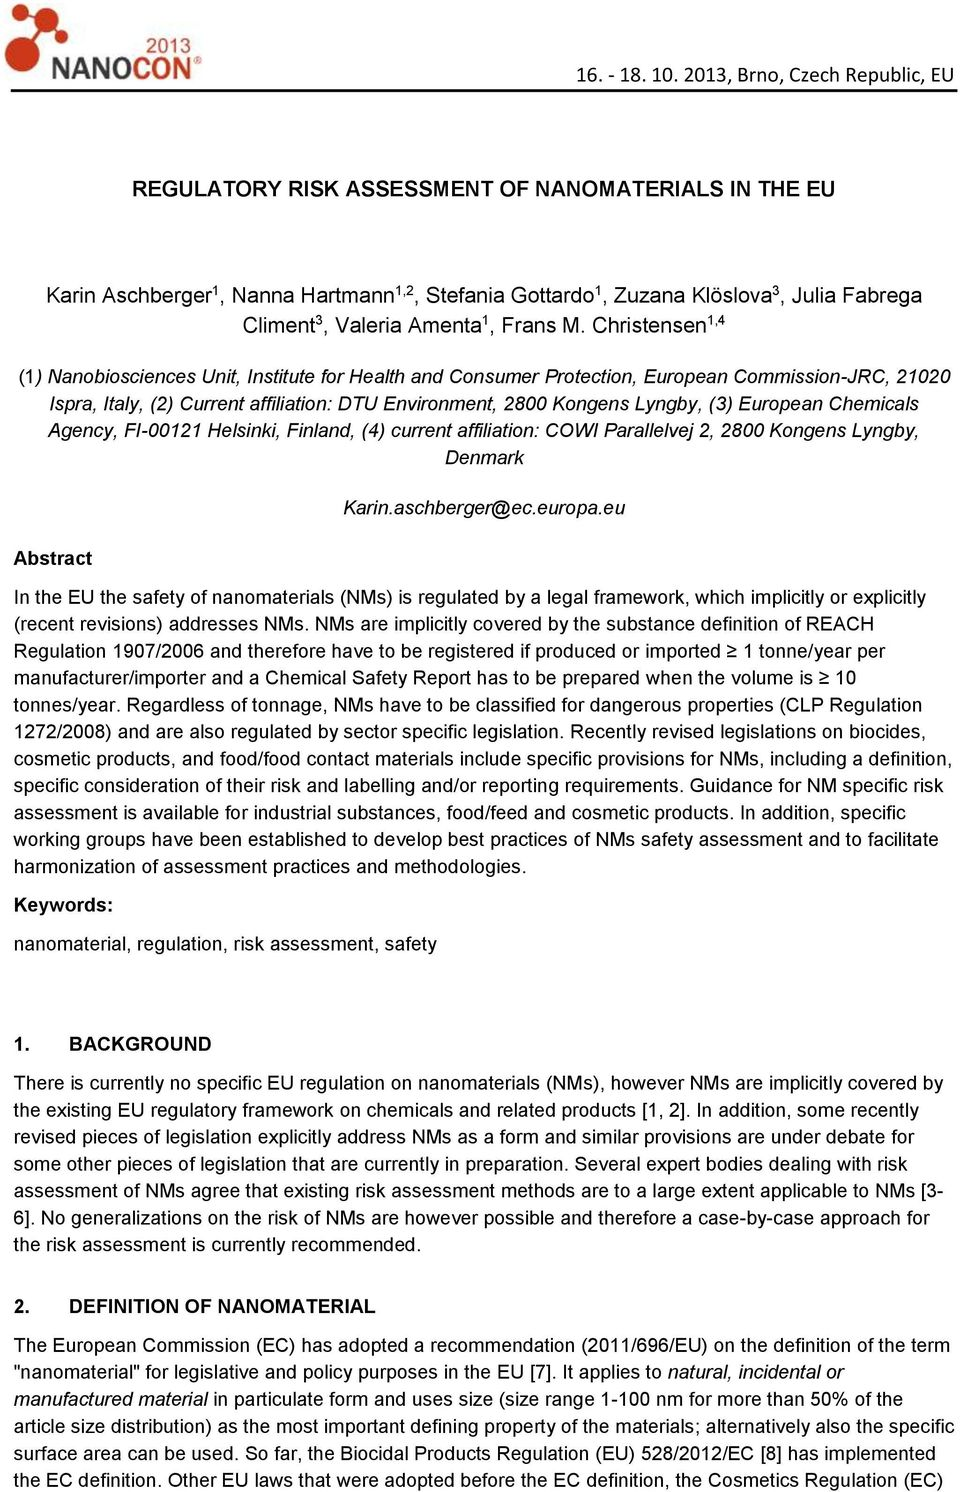 European Chemicals Agency, FI-00121 Helsinki, Finland, (4) current affiliation: COWI Parallelvej 2, 2800 Kongens Lyngby, Denmark Abstract Karin.aschberger@ec.europa.